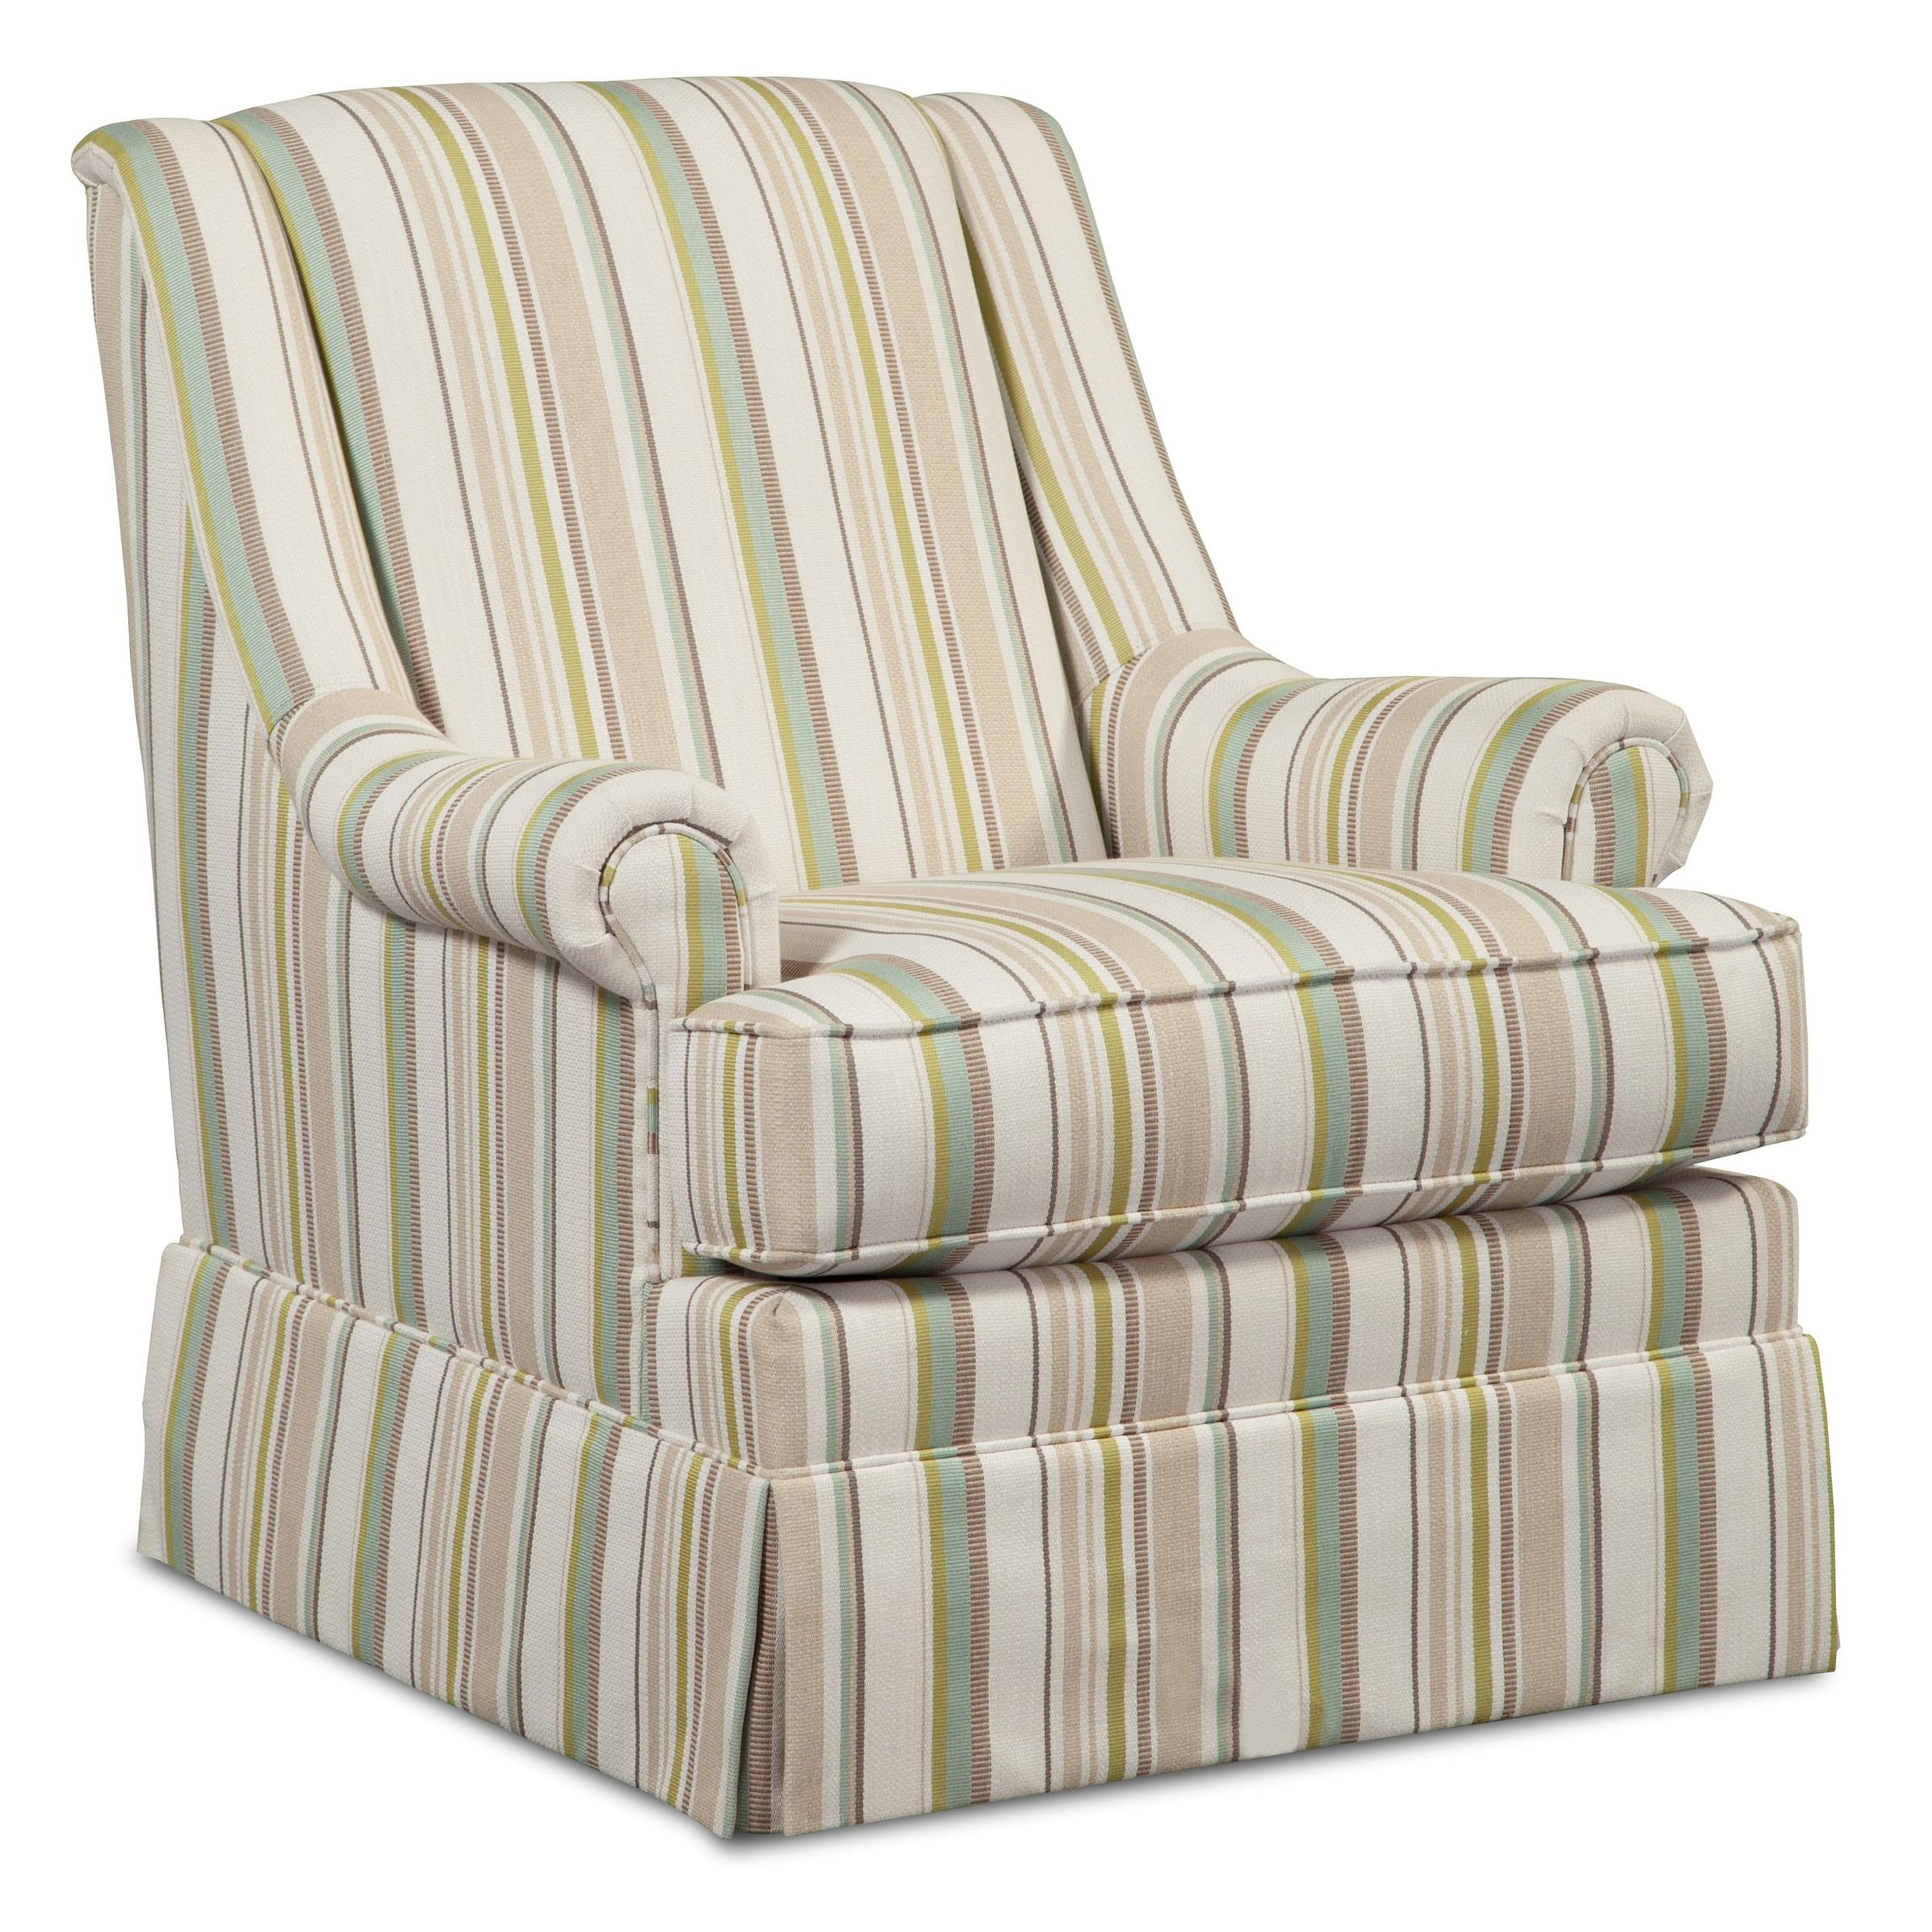 Craftmaster Swivel Chairs 052810 Skirted Accent Chair With